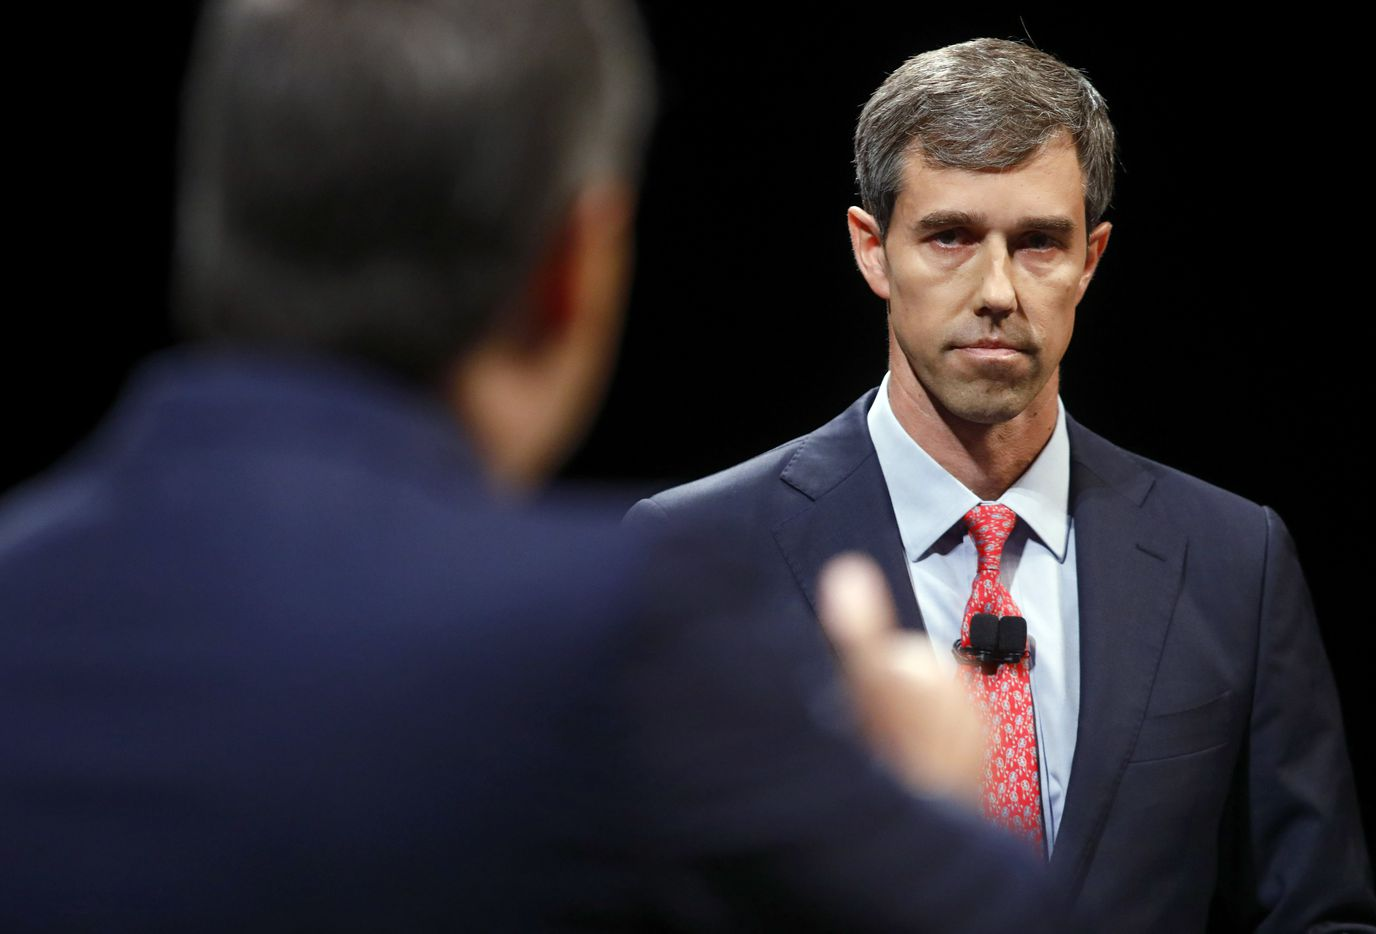 Rep. Beto O'Rourke (D-TX) looks and listens to Sen. Ted Cruz (R-TX) during a debate at McFarlin Auditorium at SMU in Dallas, on  Friday, September 21, 2018.